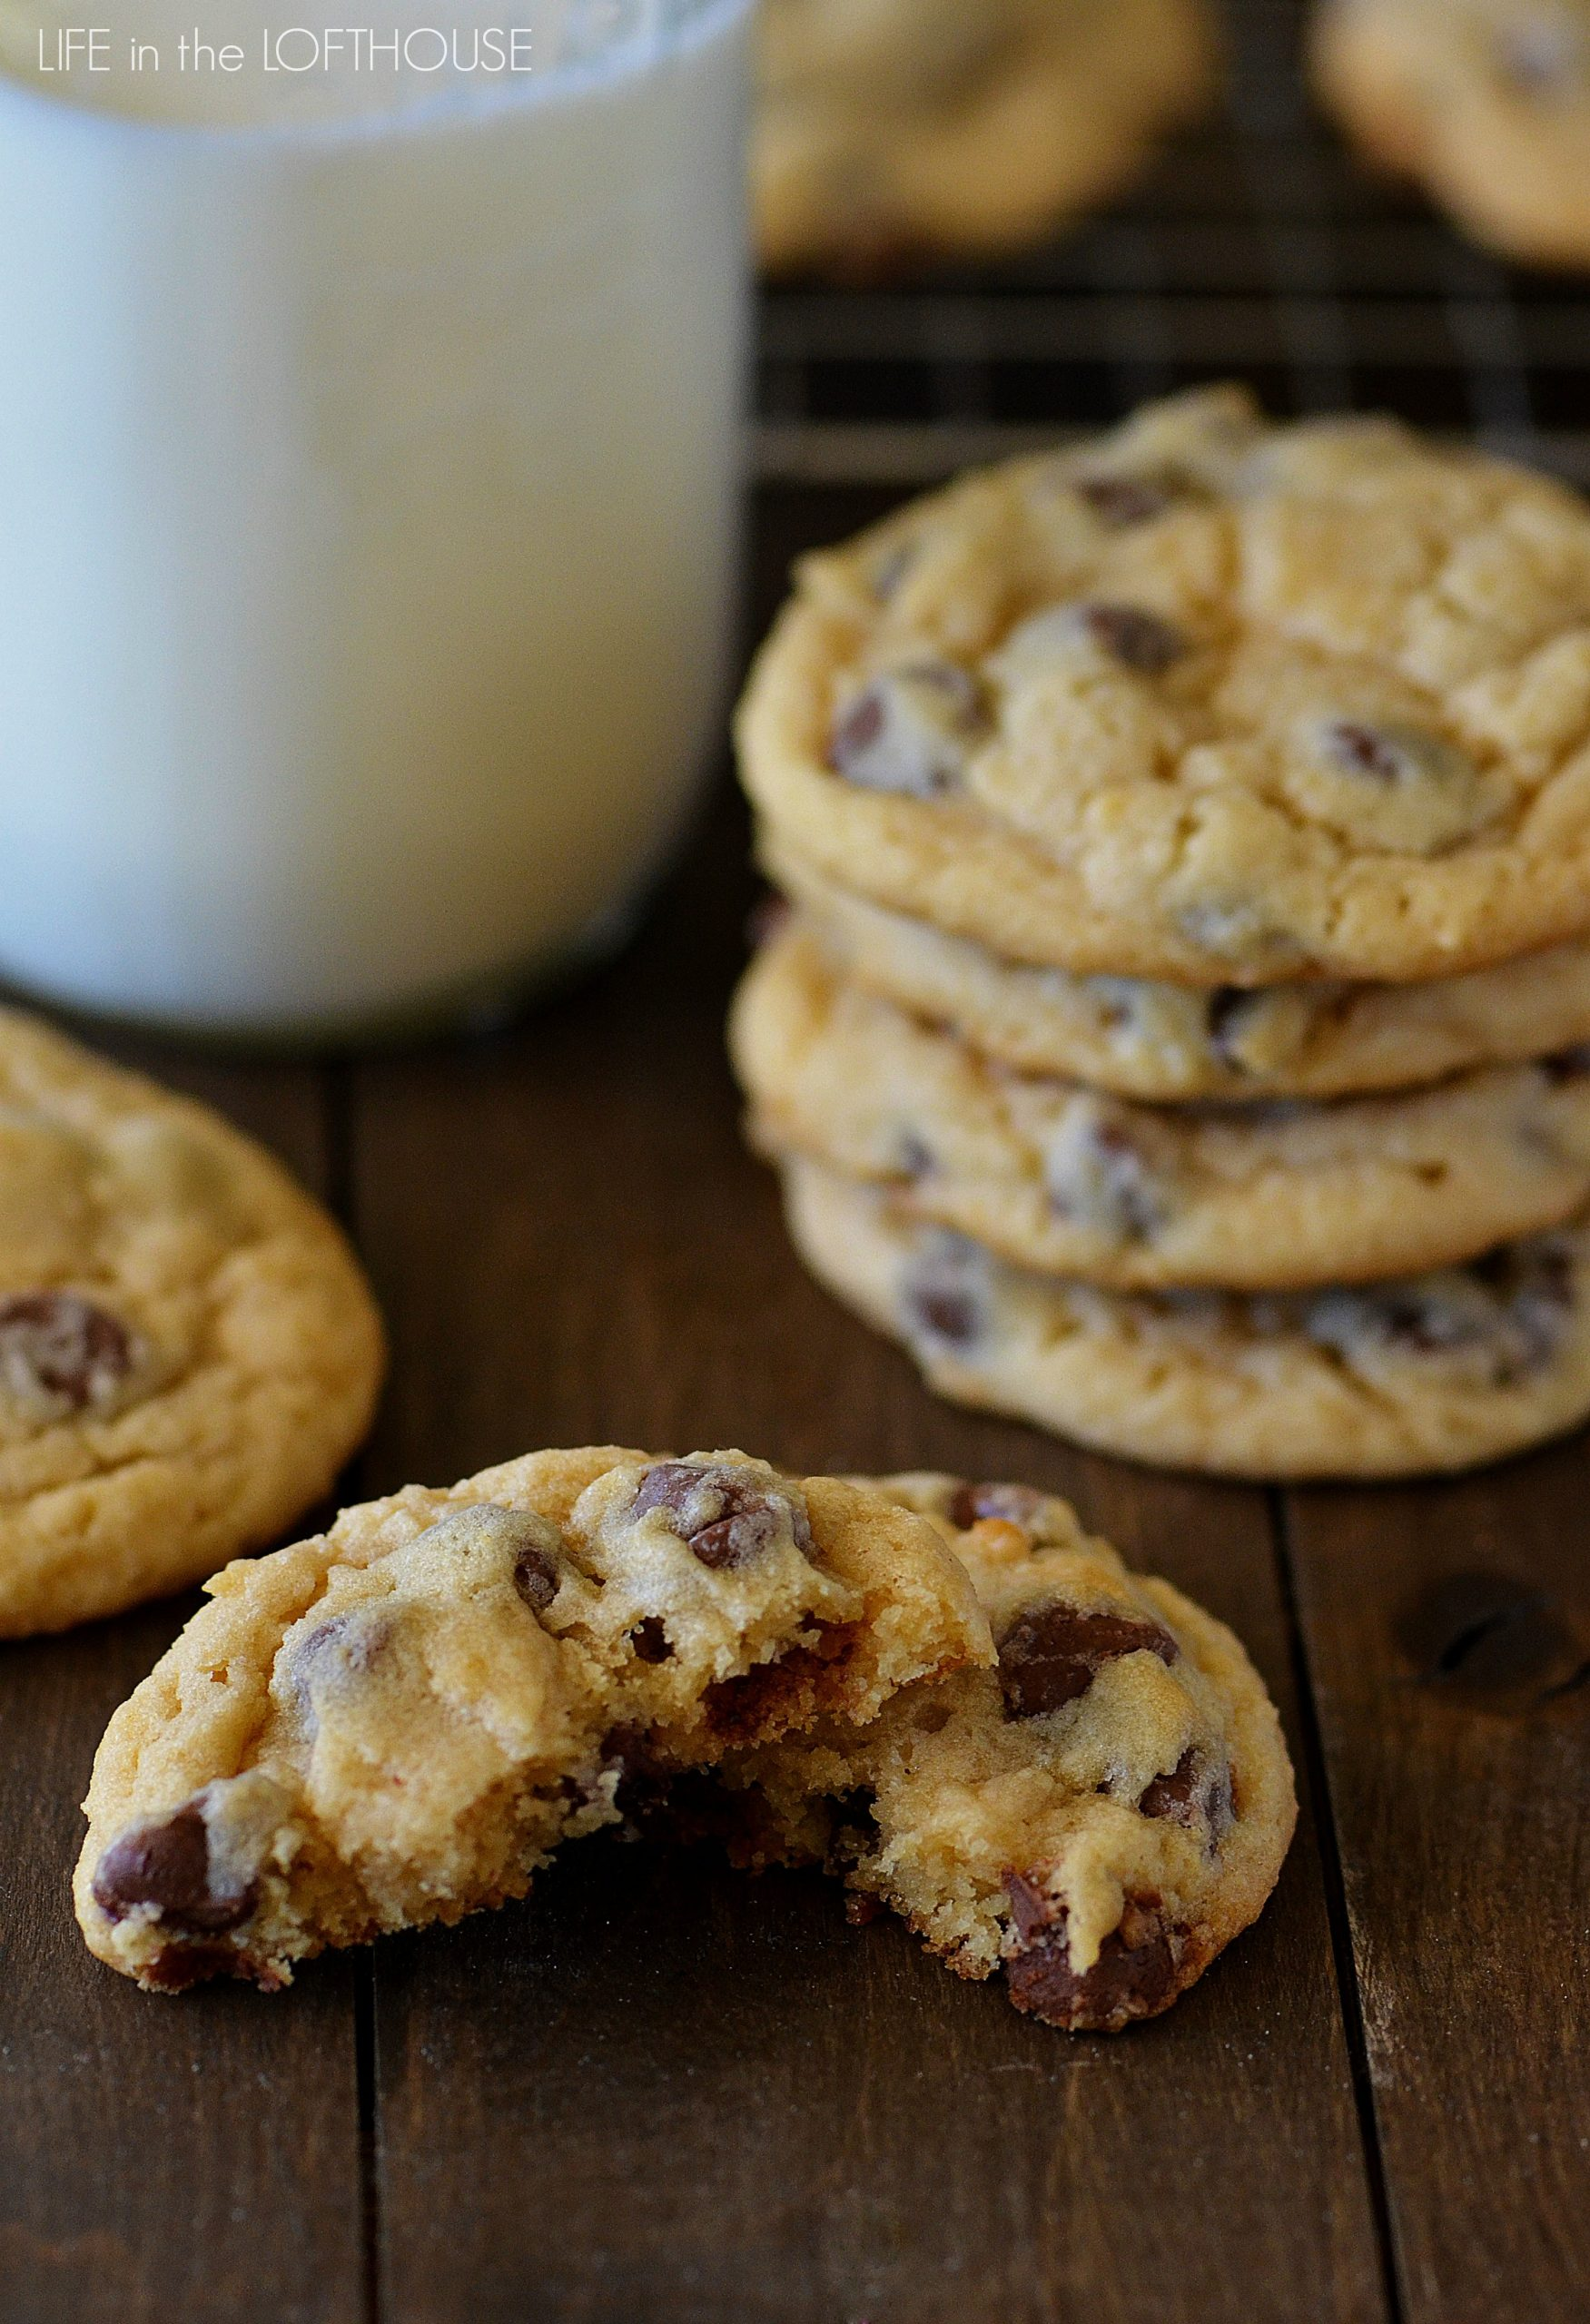 Bisquick Chocolate Chip Cookies - Life In The Lofthouse